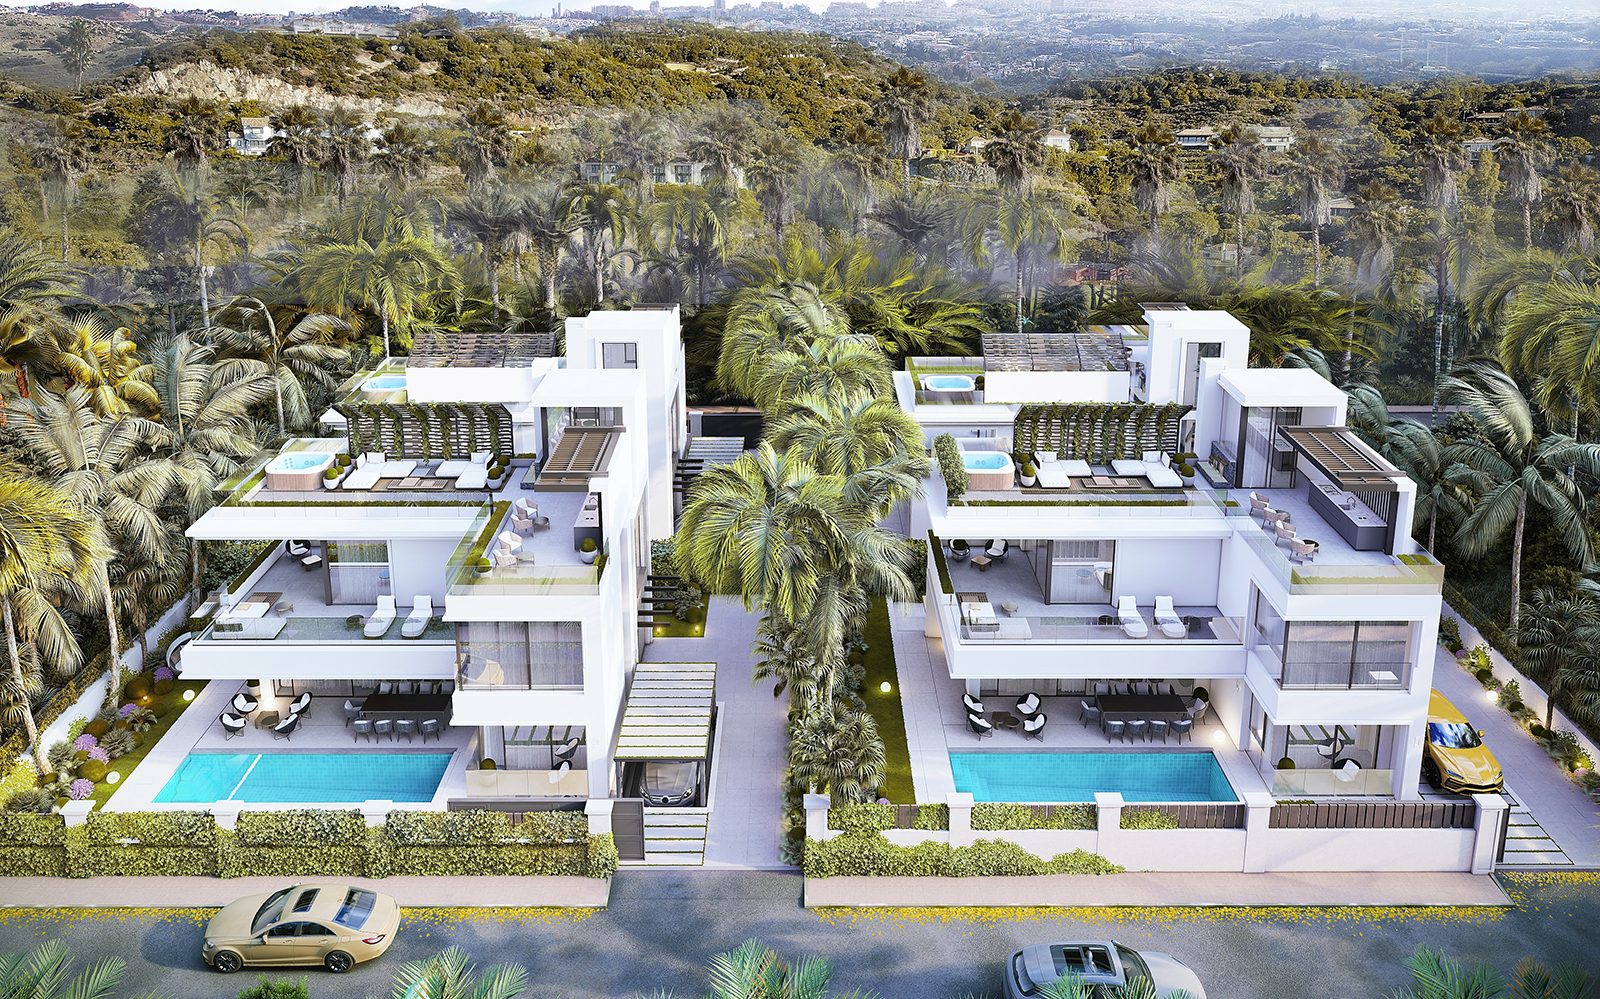 4 Brand New Villas Under Construction in Rio Verde